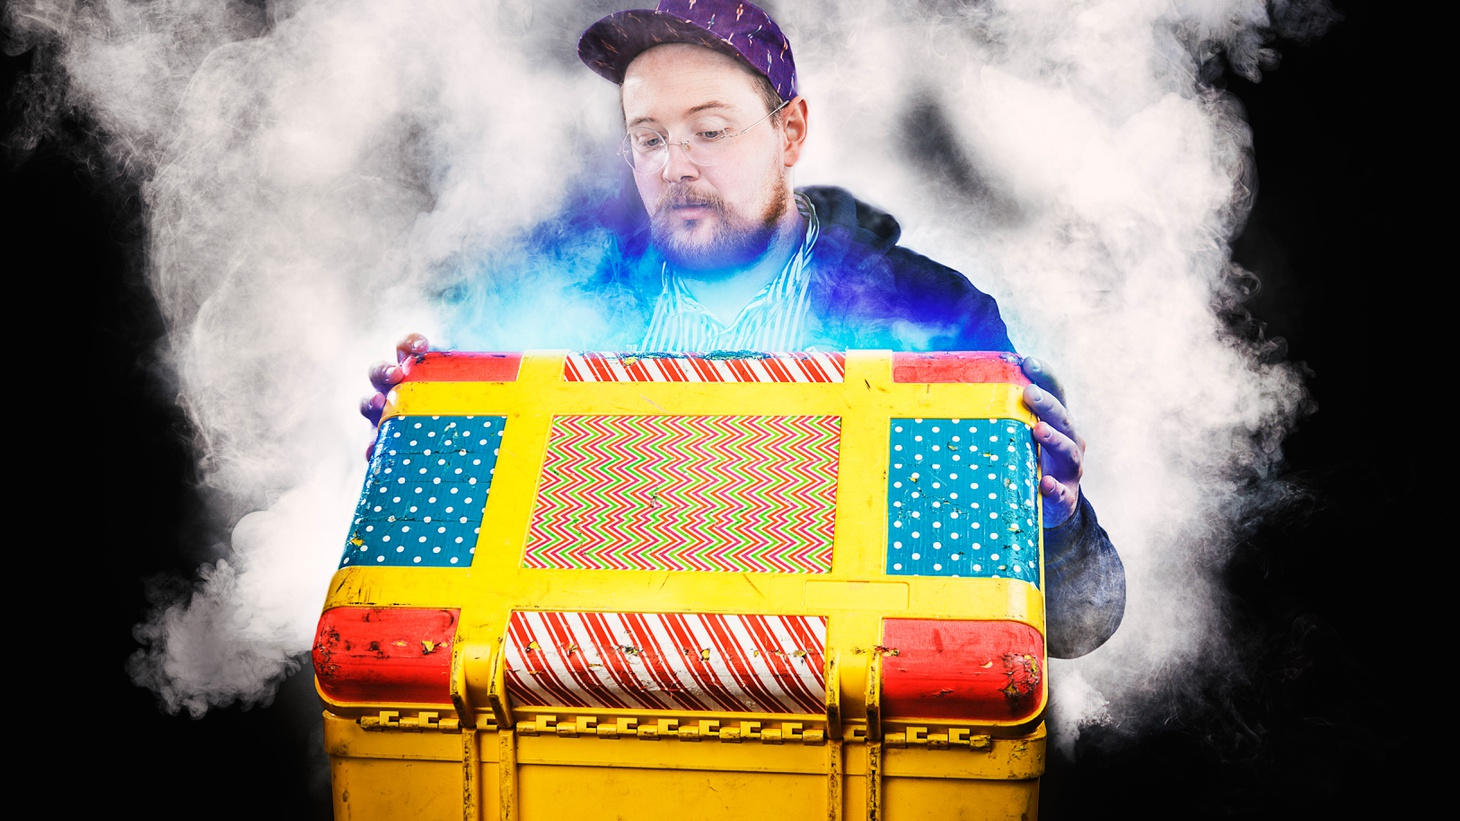 Baltimore experimental pop artist Dan Deacon spent the past year opening for Arcade Fire on their North American arena tour. His electronic wizardry was known to many before that high profile gig.